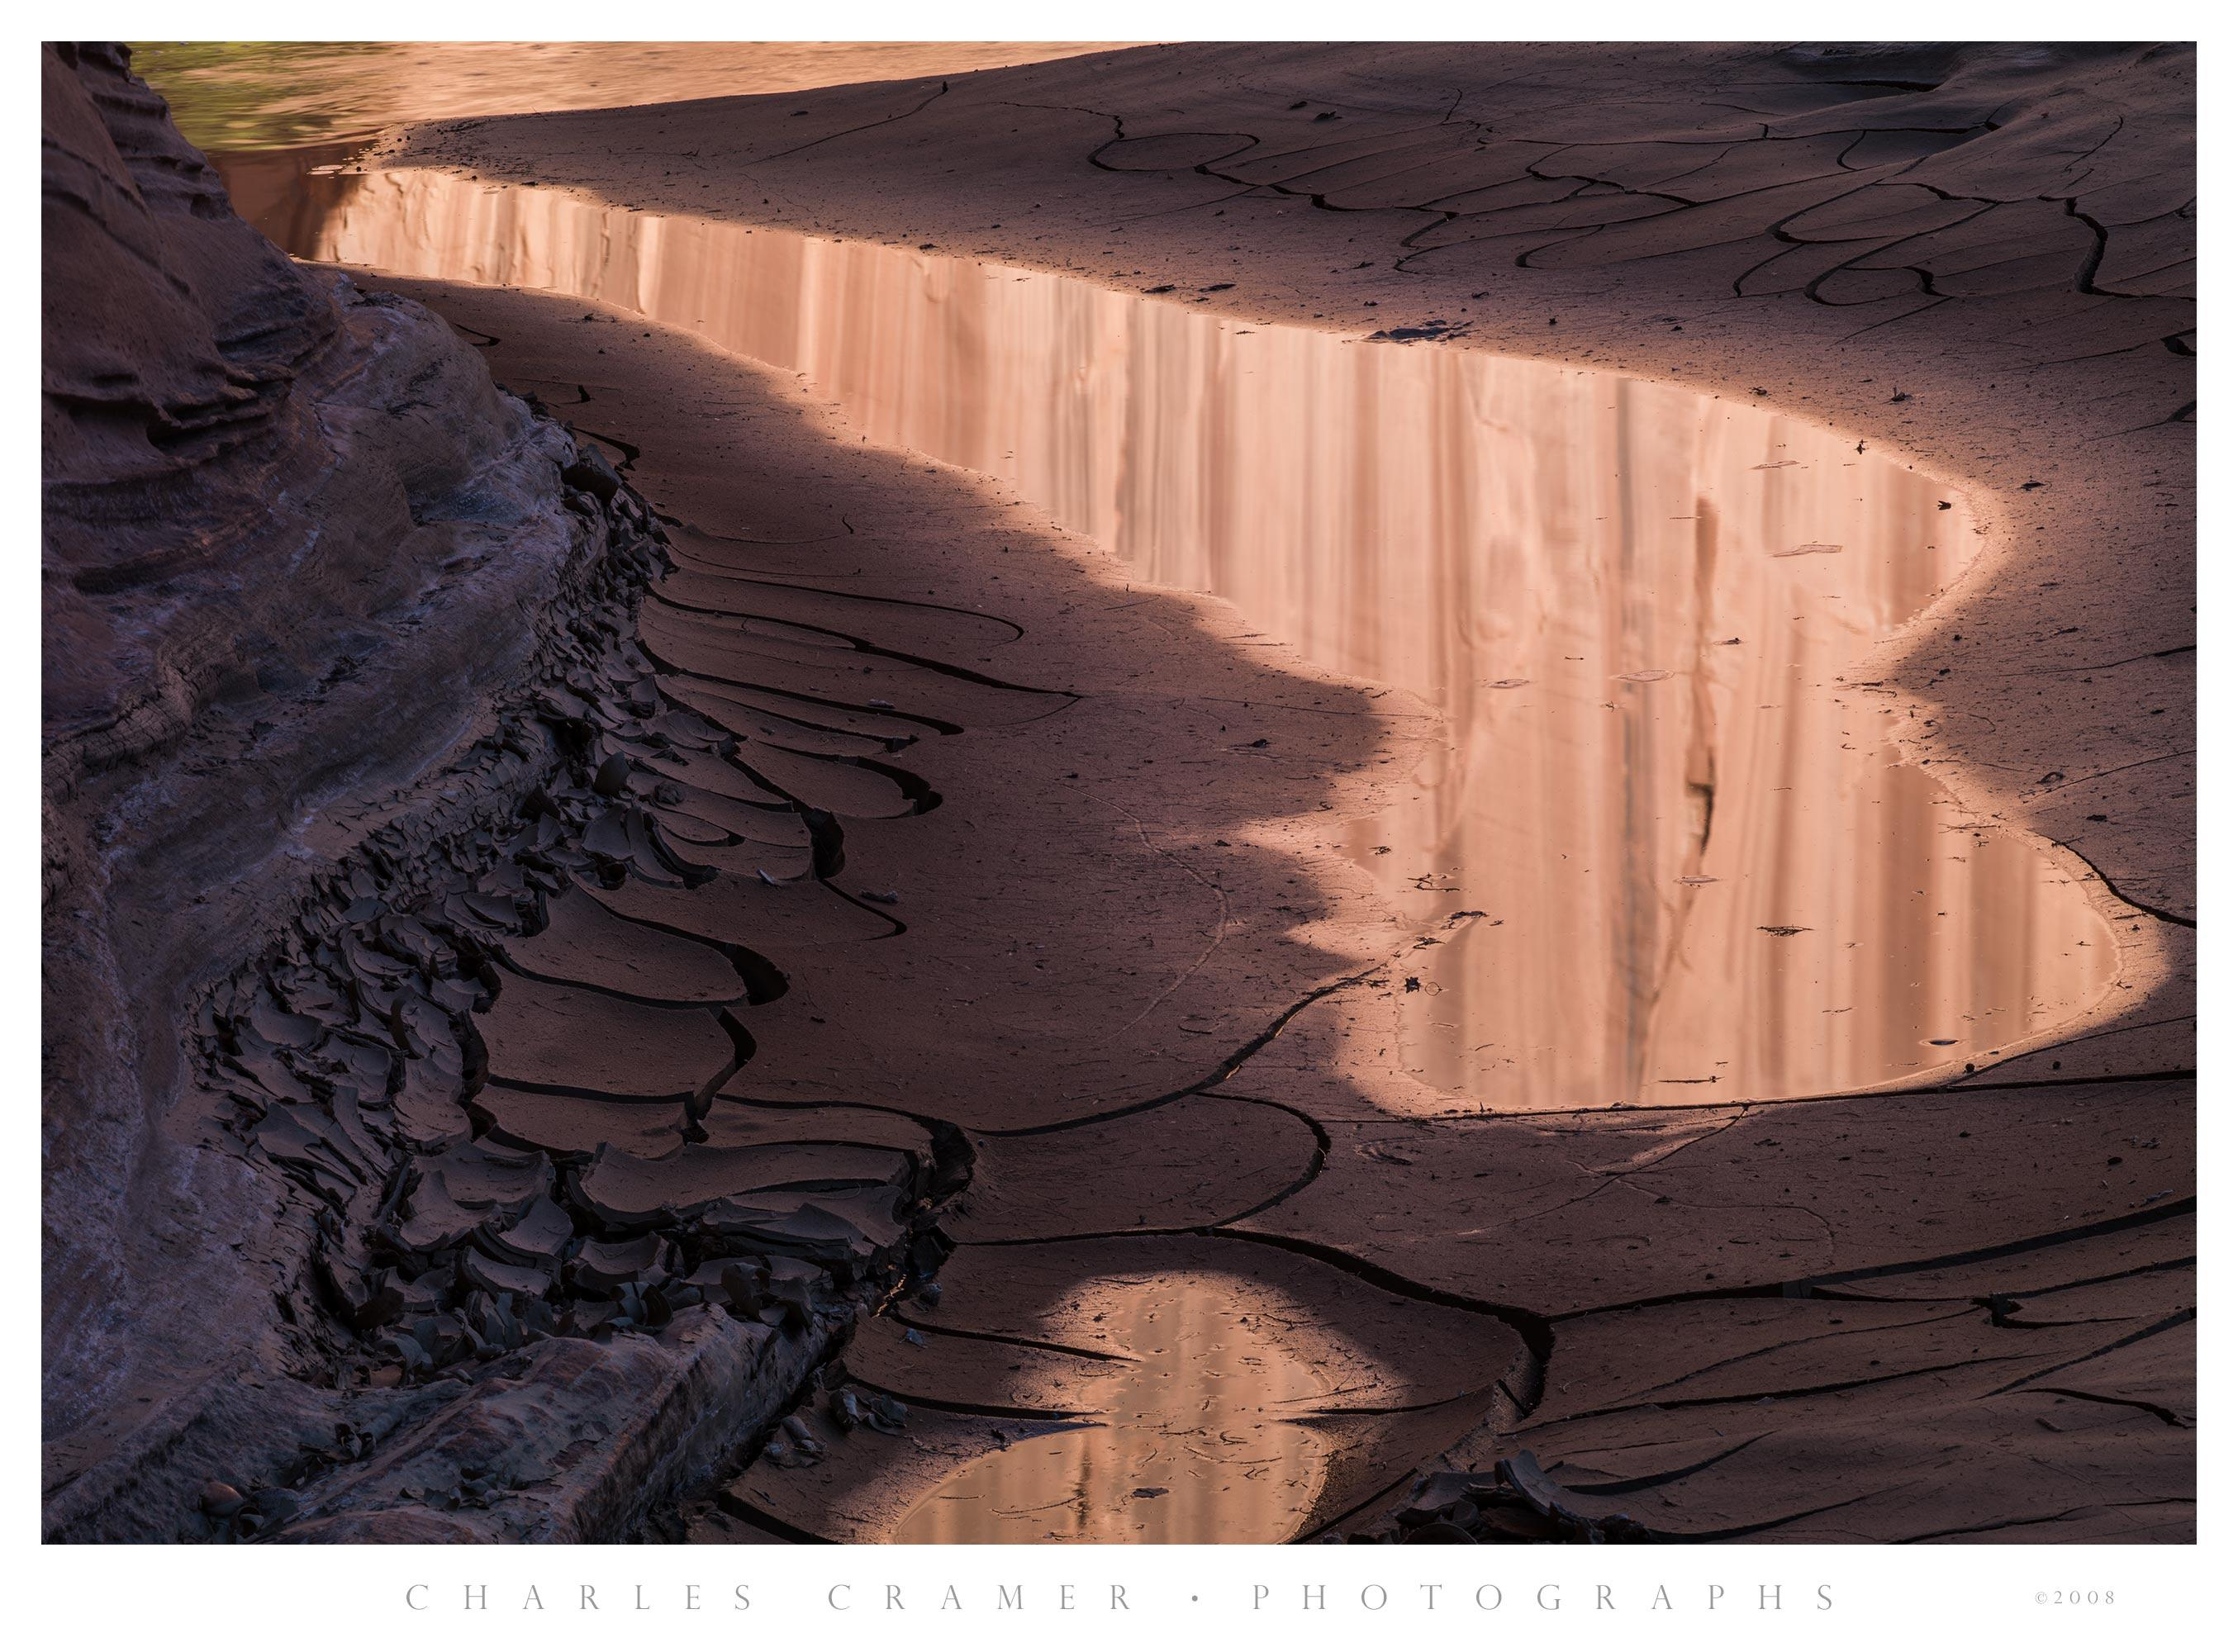 Dried Mud, Paria River, with Reflected Water-Stained Canyon Walls